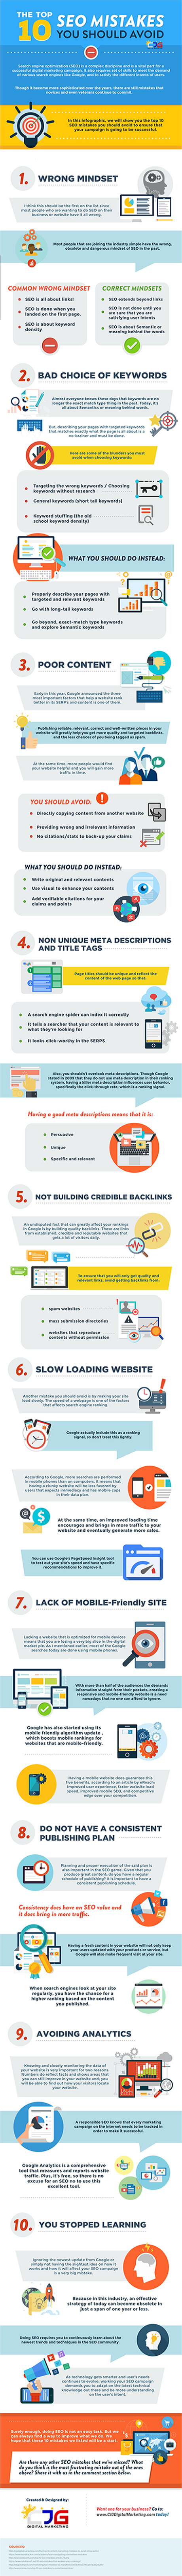 the-top-10-seo-mistakes-you-should-avoid-3